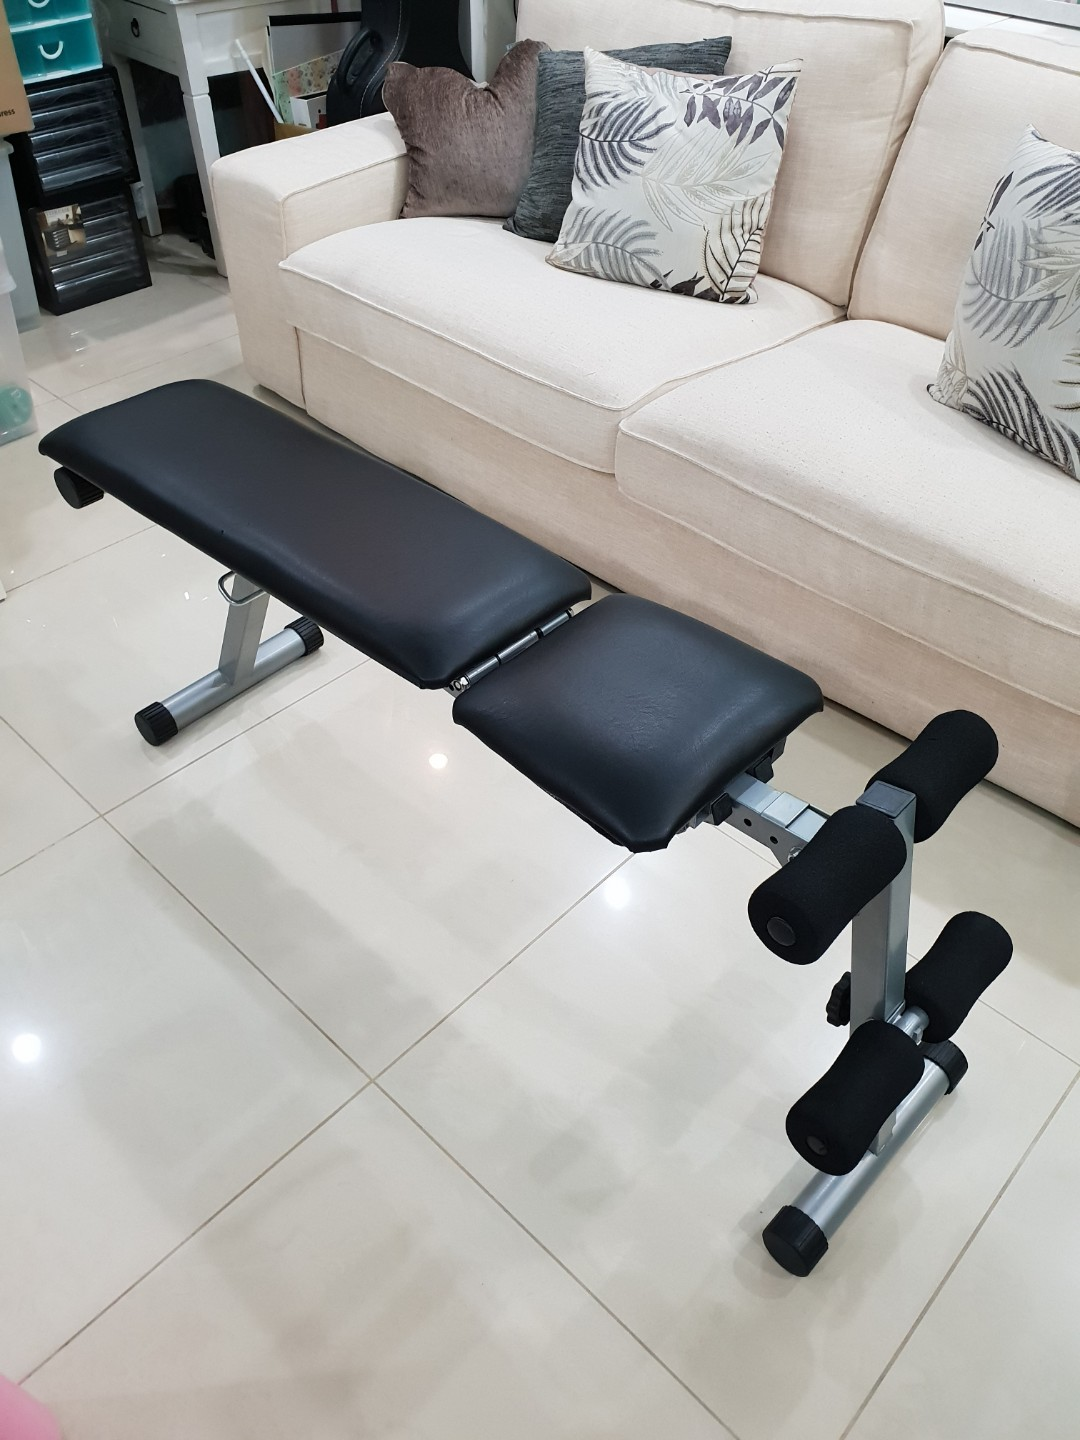 Astounding Foldable Fitness Exercise Bench Press Seat Chair Gmtry Best Dining Table And Chair Ideas Images Gmtryco